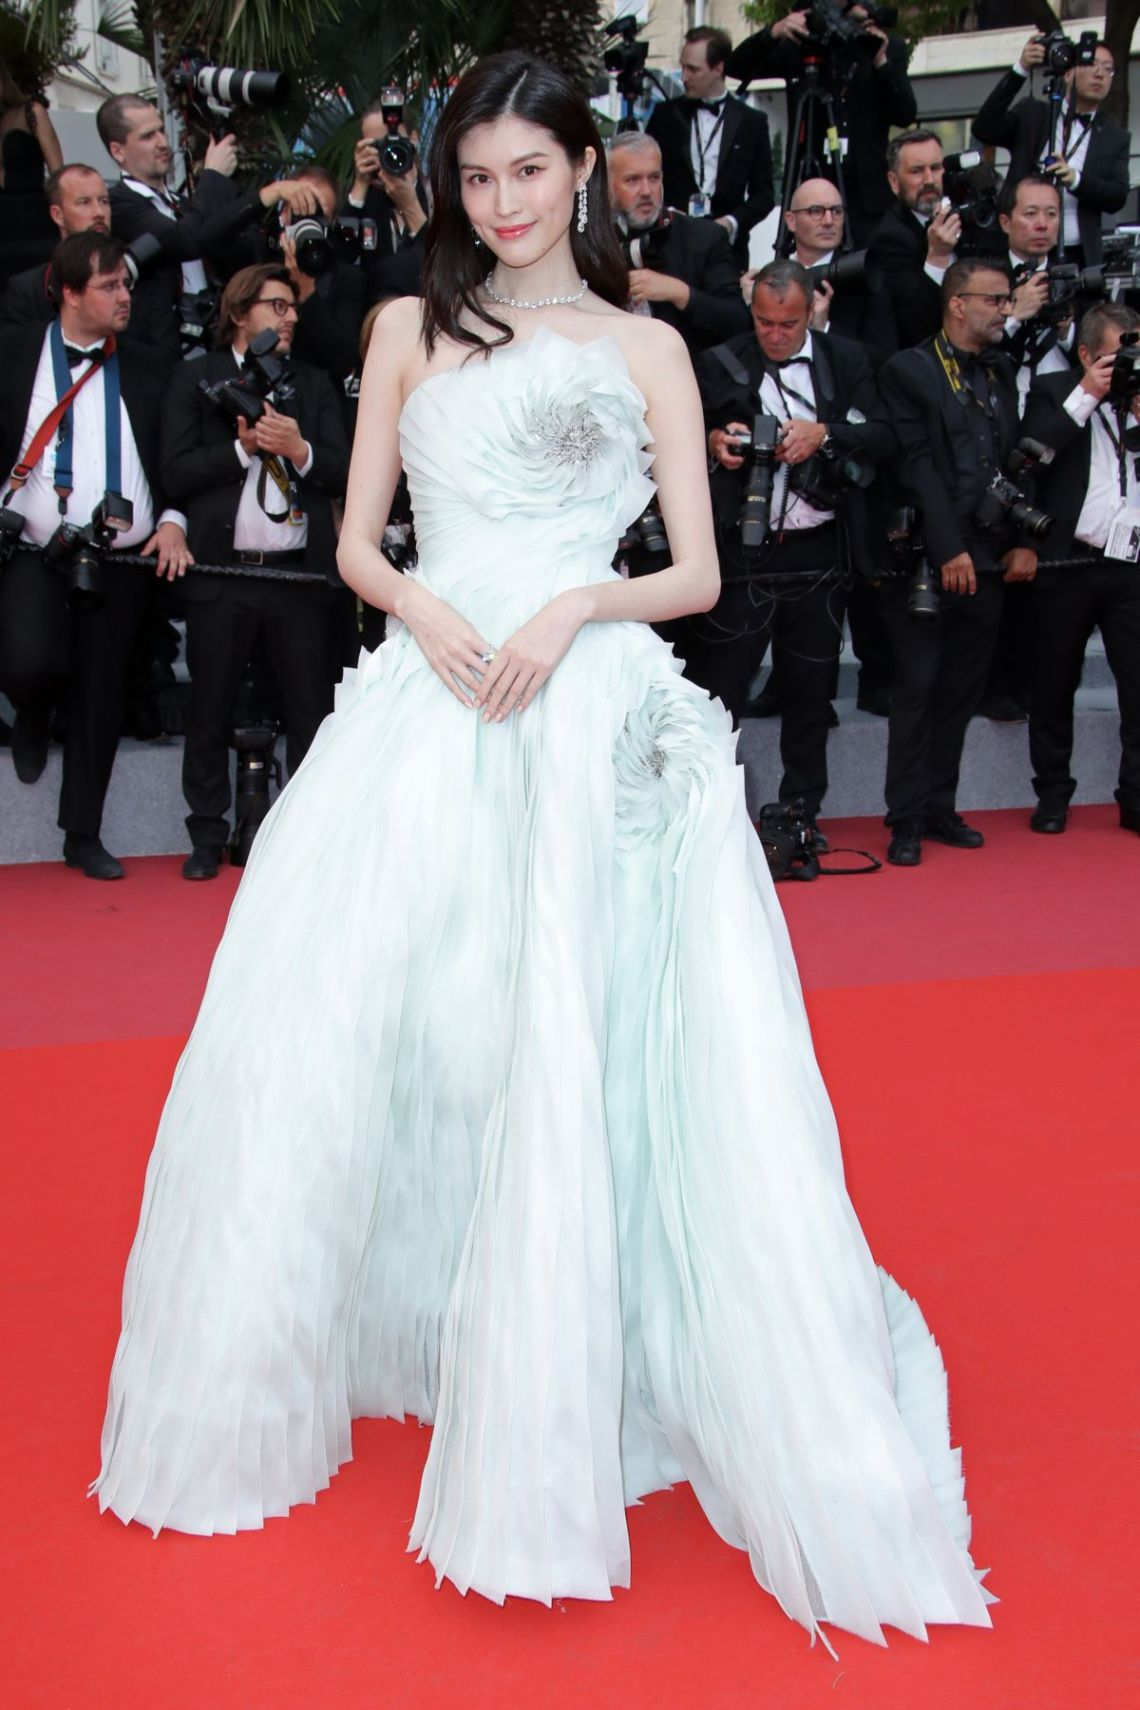 sui-he-at-sorry-angel-premiere-71st-cannes-film-festival-france-9Ralph&Russo